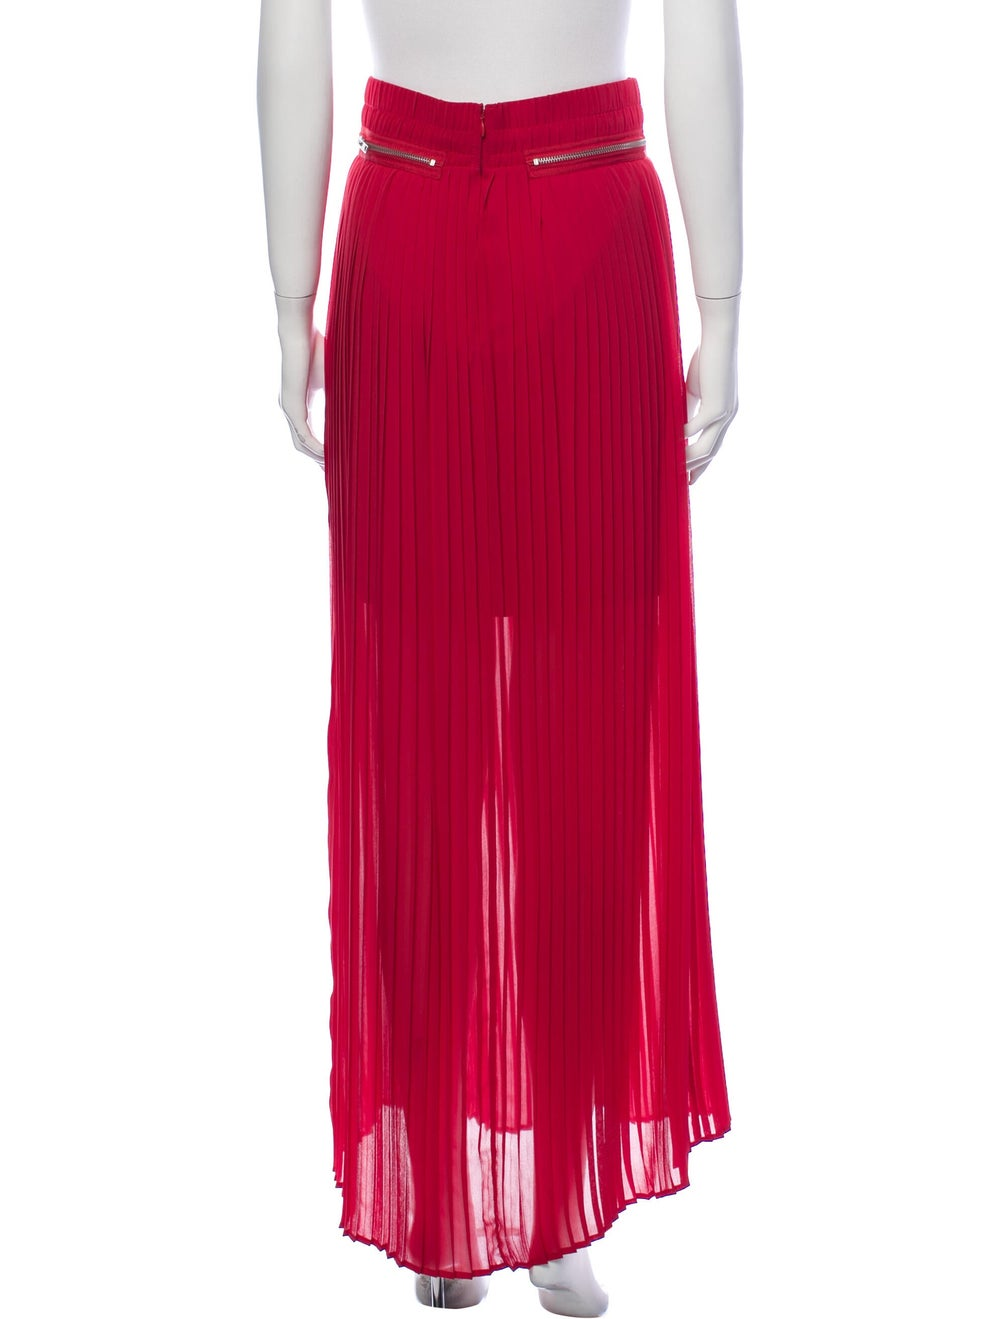 The Kooples Pleated Accents Long Skirt Red - image 3